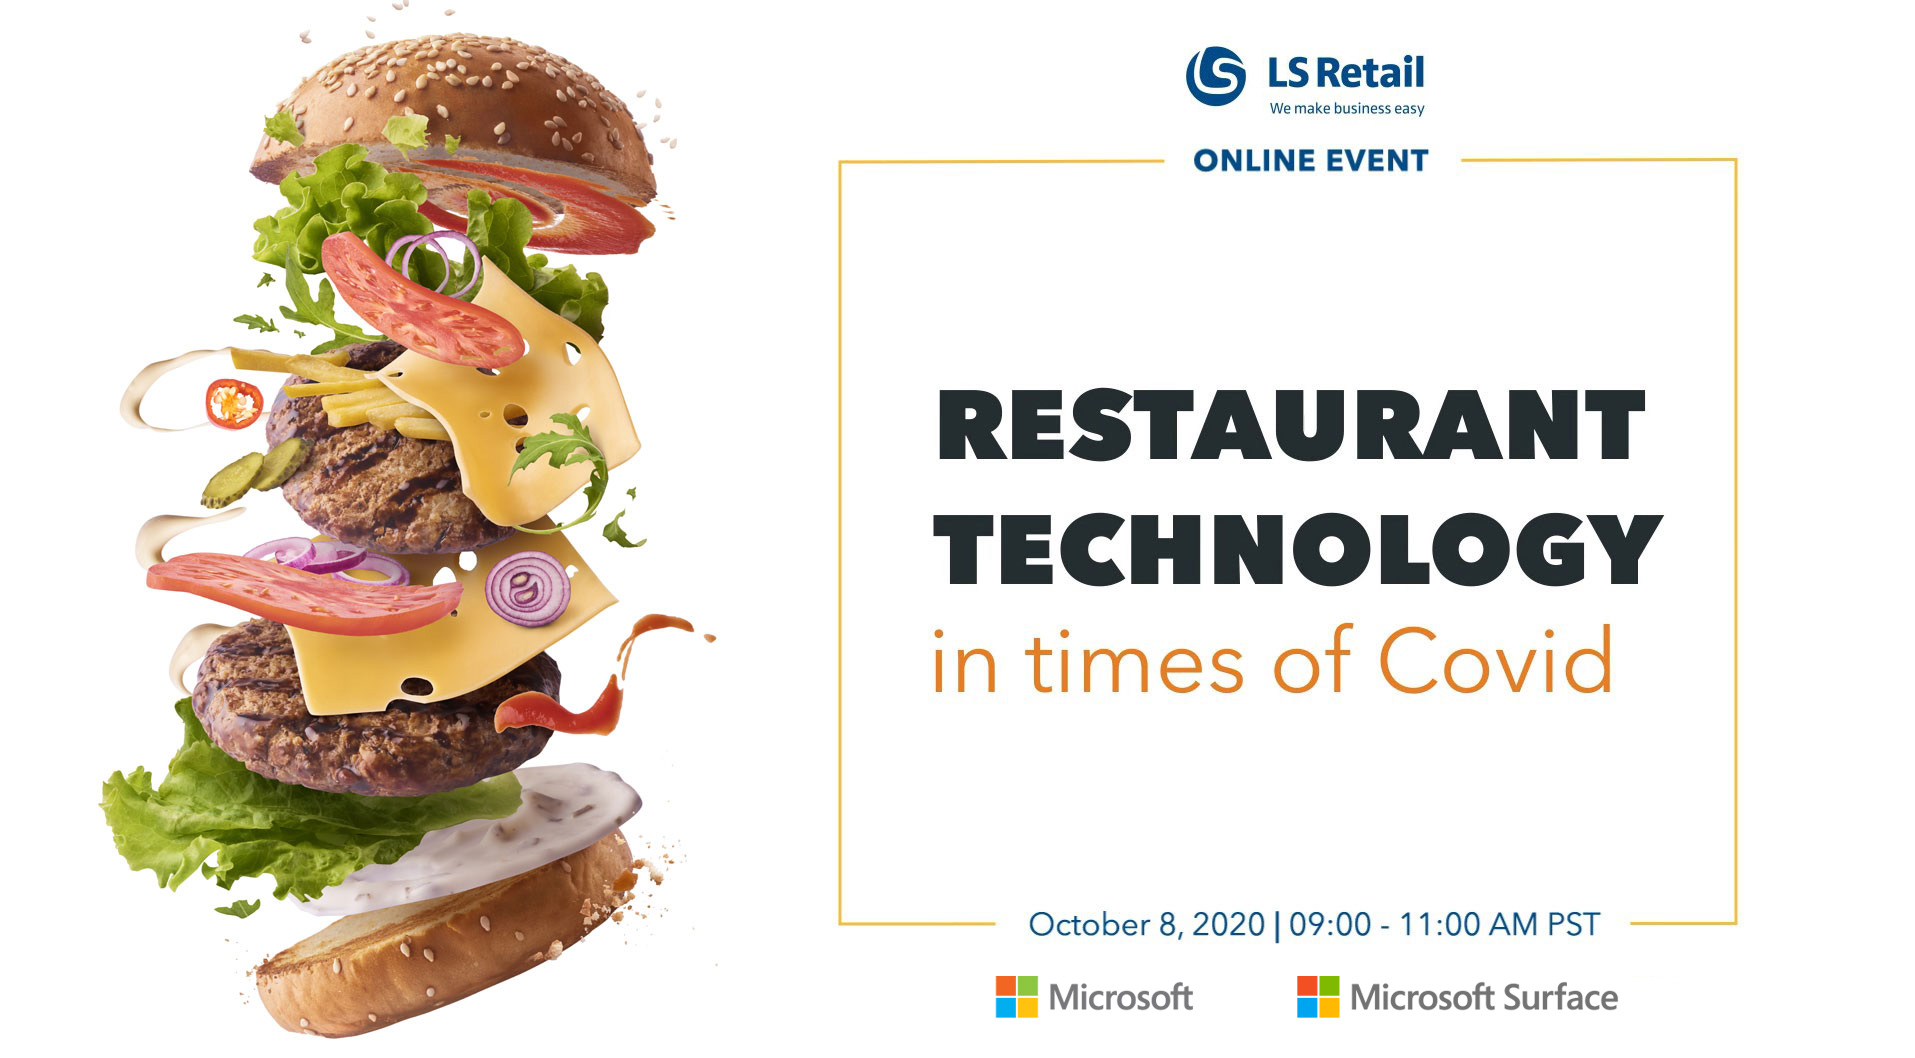 Restaurant-event-Oct-8-2020-technology